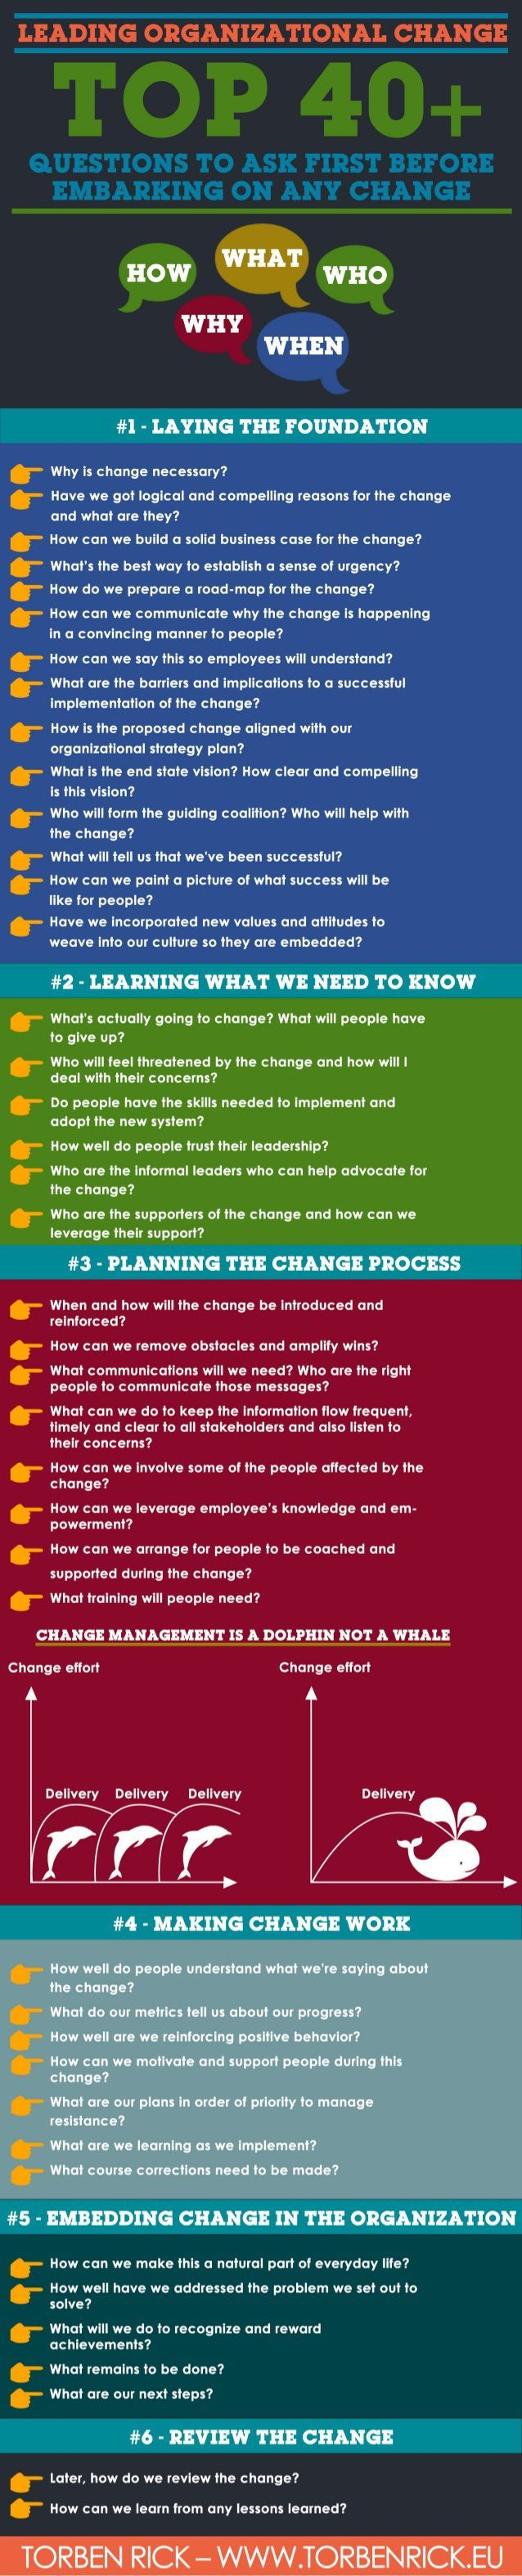 77 best restaurant management images on pinterest server life top 40 questions to ask before embarking on any change fandeluxe Gallery